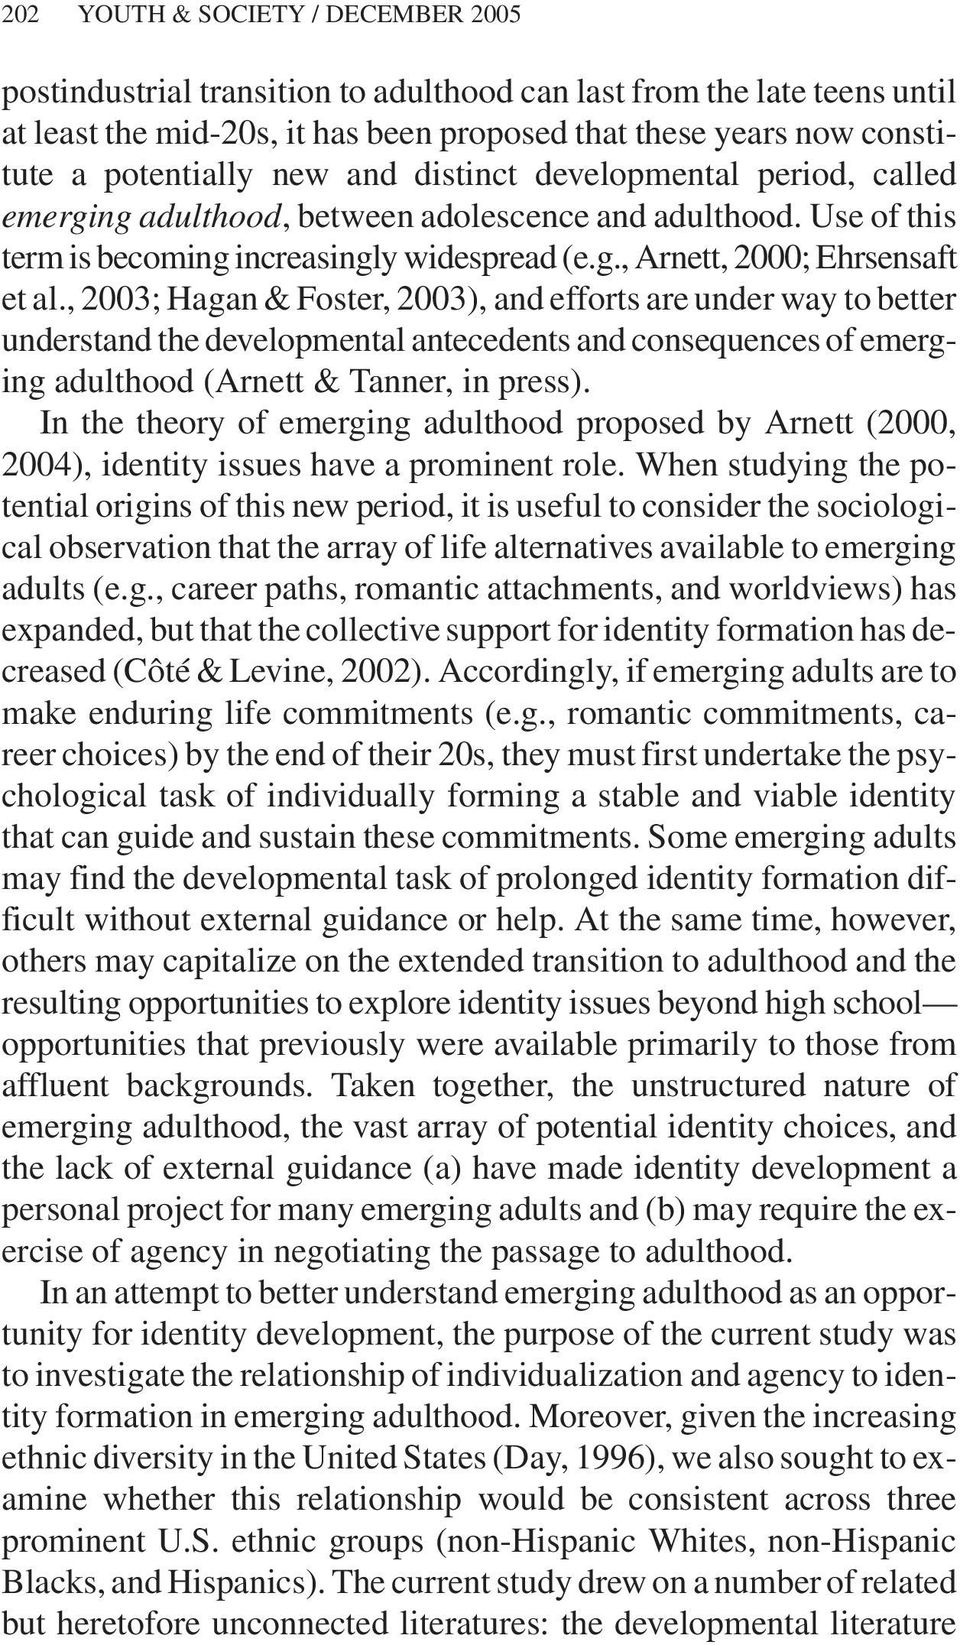 , 2003; Hagan & Foster, 2003), and efforts are under way to better understand the developmental antecedents and consequences of emerging adulthood (Arnett & Tanner, in press).